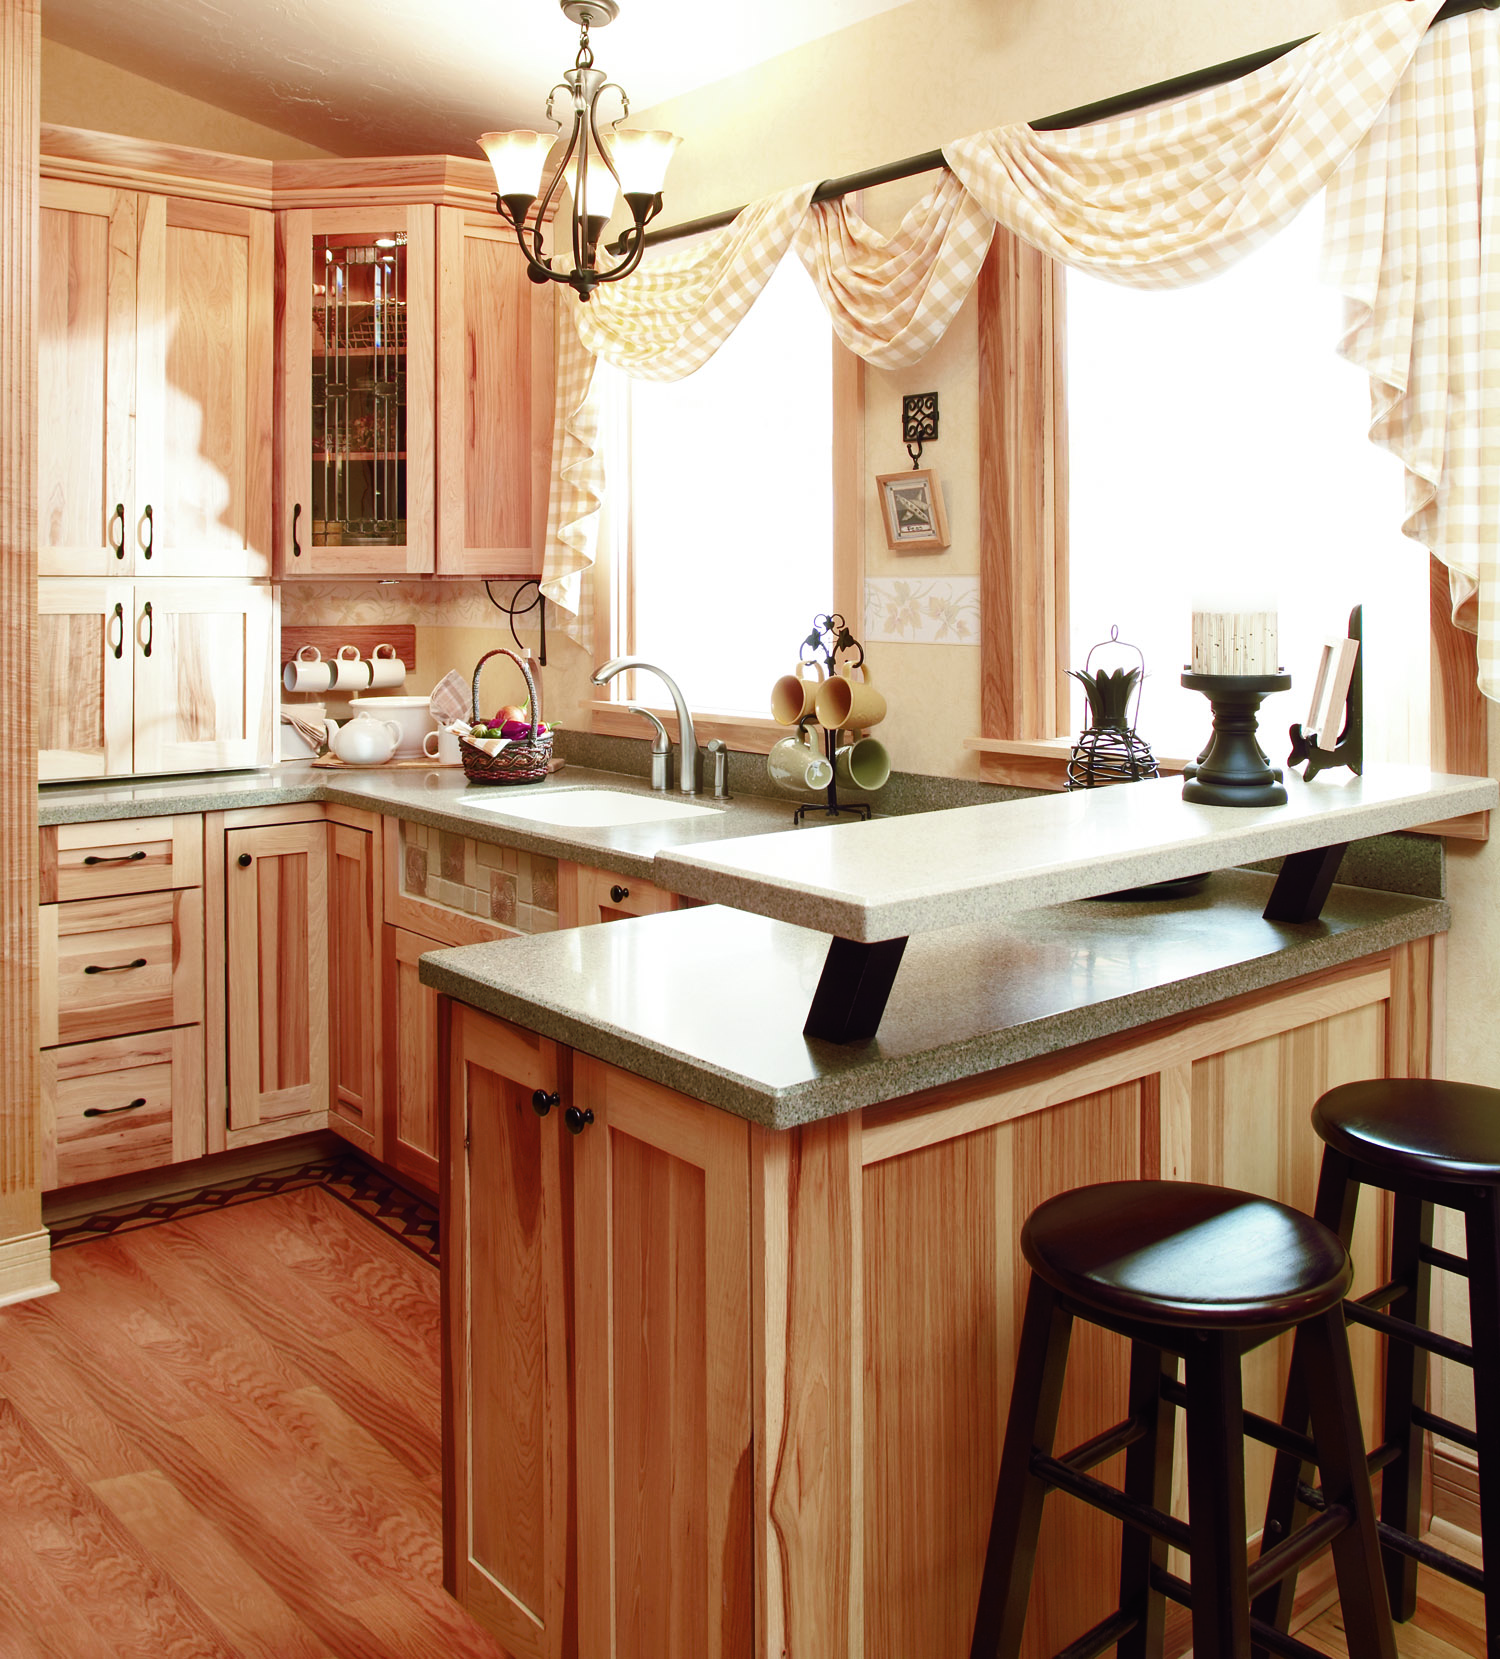 Cabinet Solutions – Experienced Home Improvement